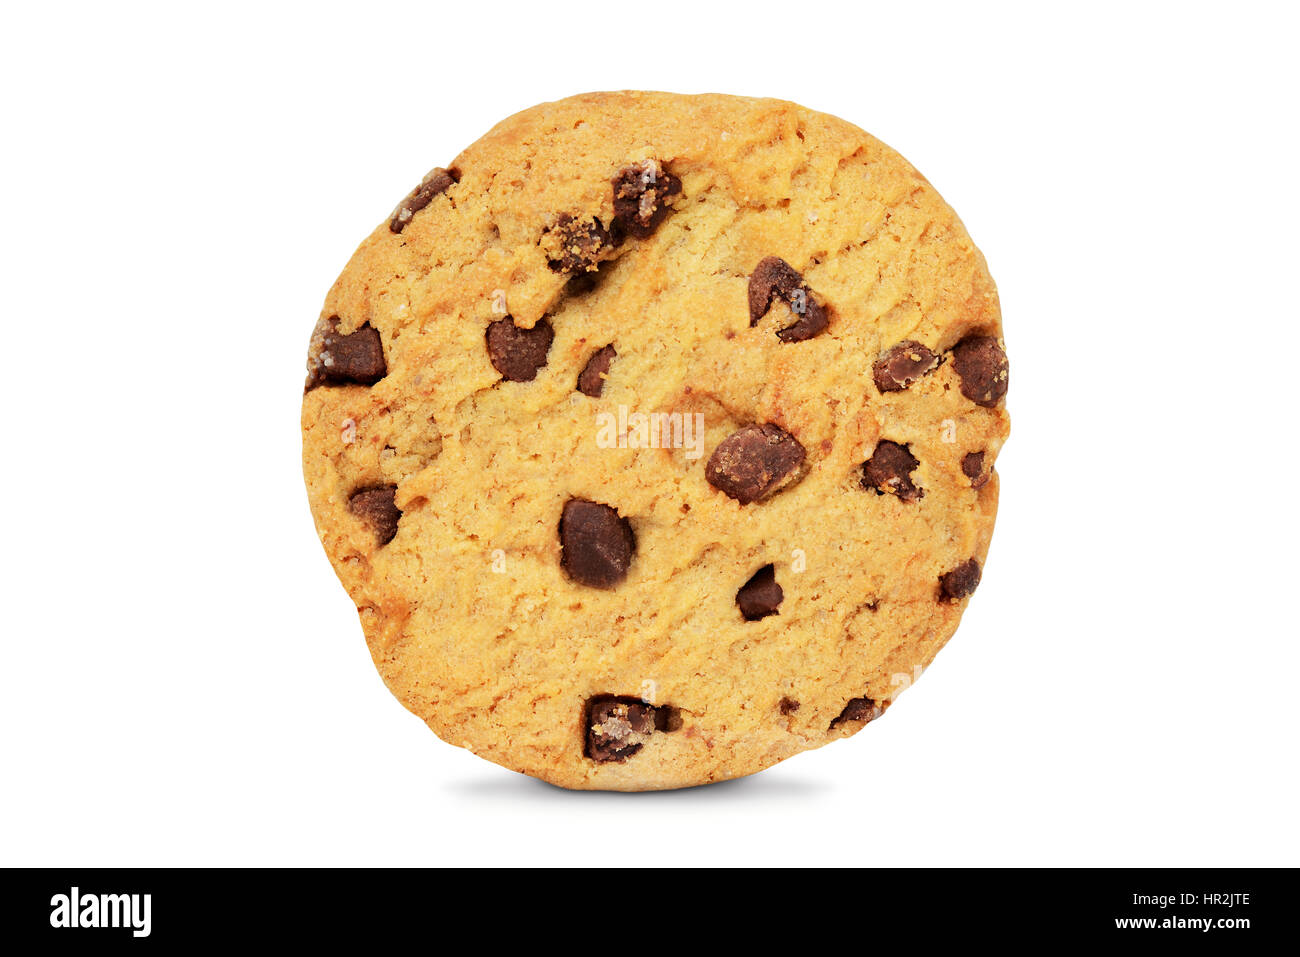 how to make cut out chocolate chip cookies